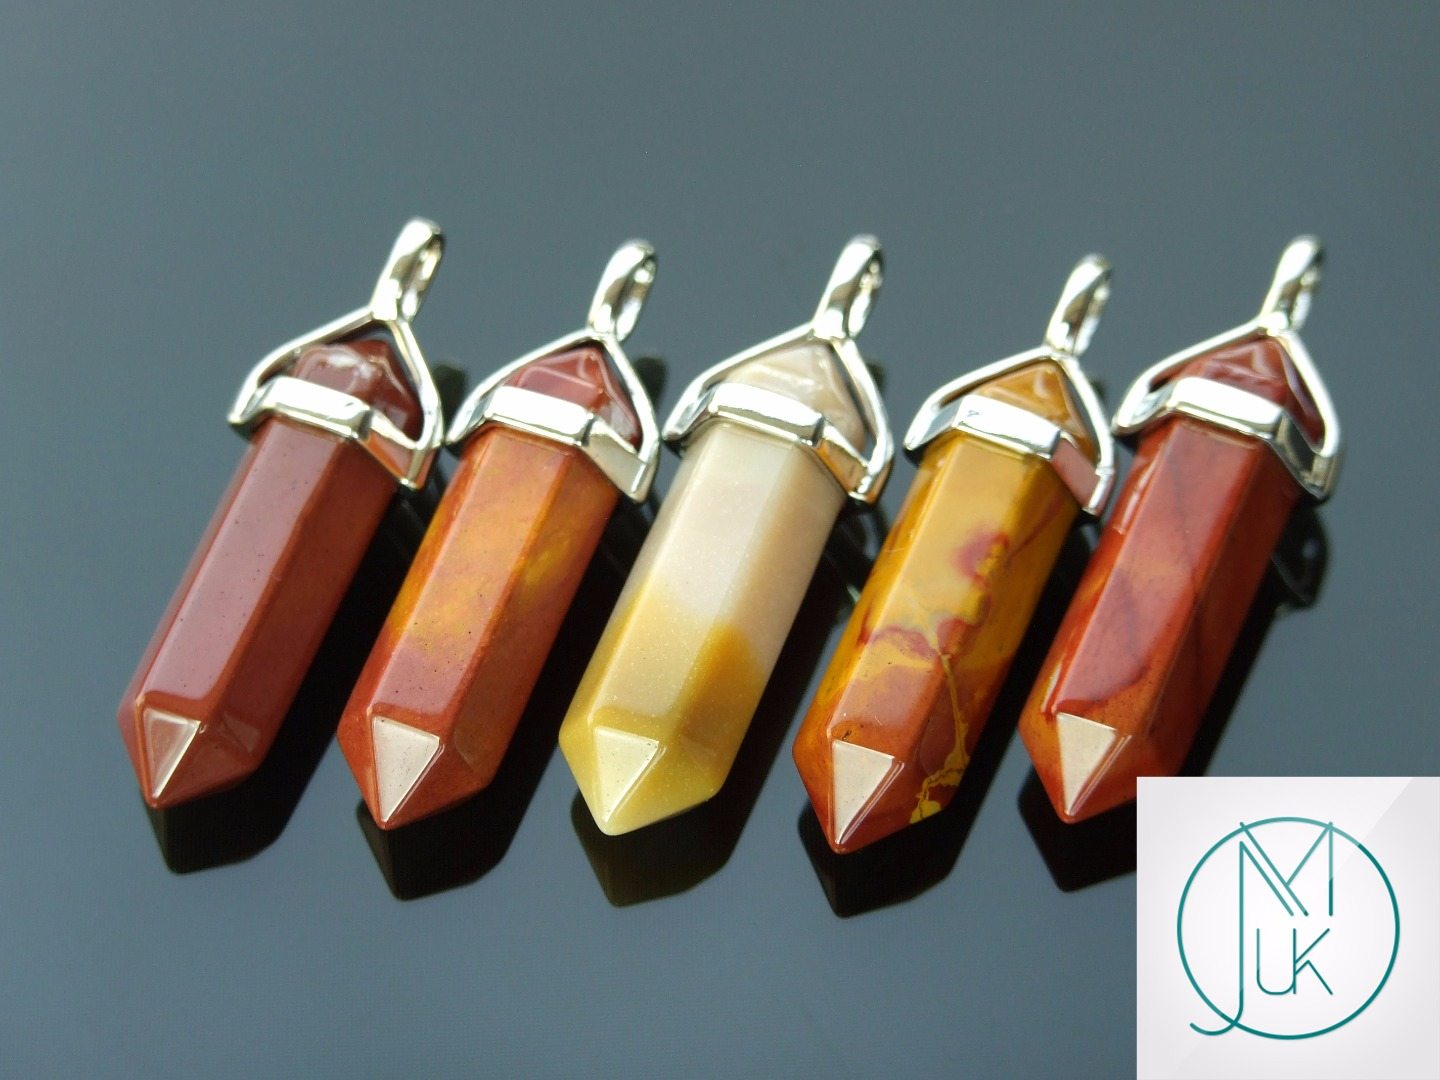 Gemstone-Pendant-for-Necklace-Manmade-or-Natural-Quartz-Crystal-Healing-Stone thumbnail 65